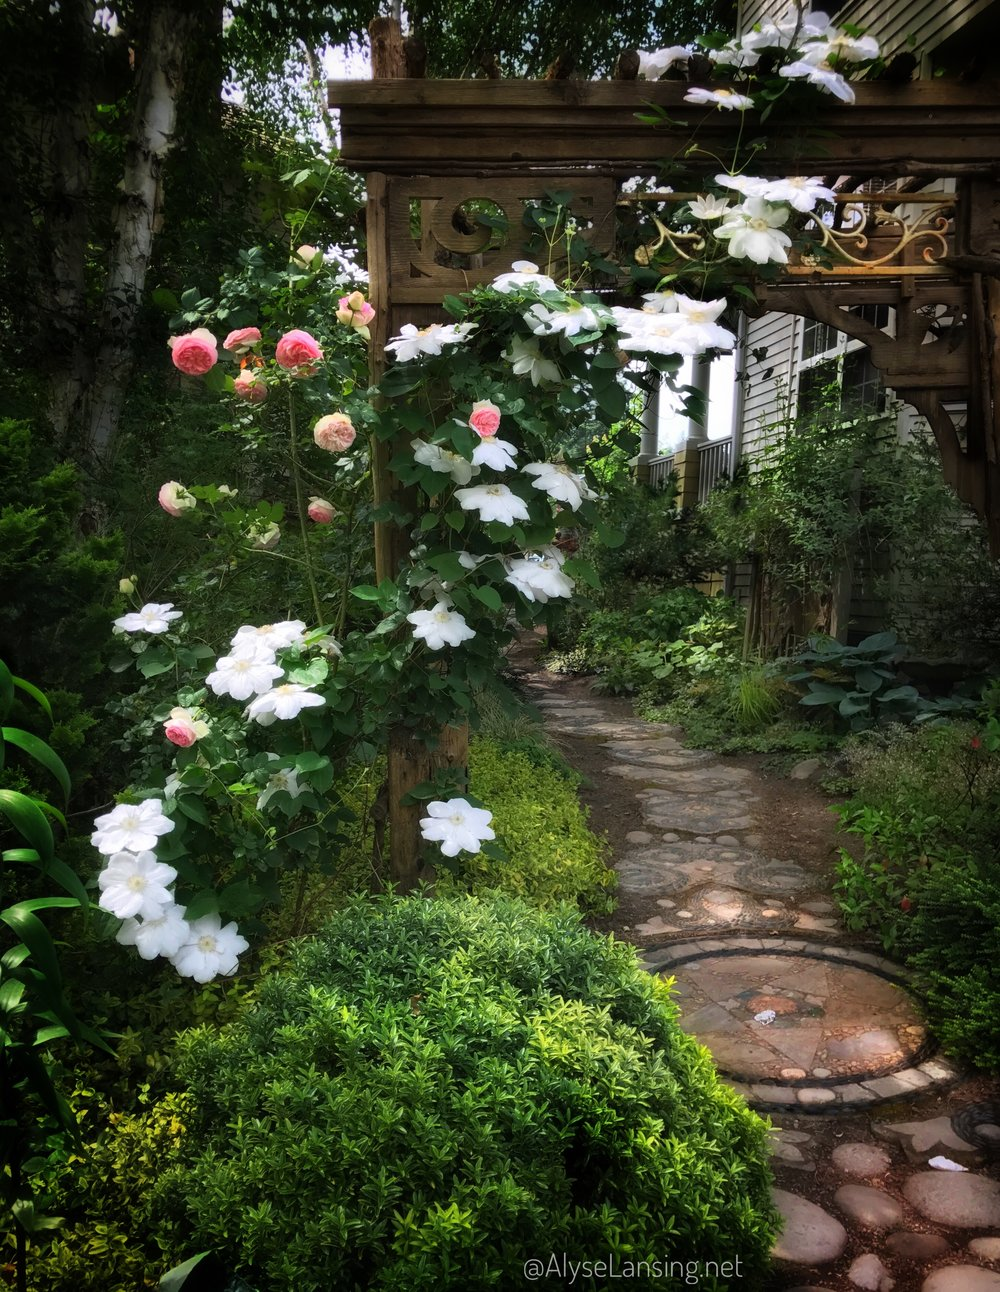 Clematis 'Candida' & Rosa 'Eden' in peak bloom June 7, 2017.  Both arbor and mosaic path created by Marcia Westcott Peck.